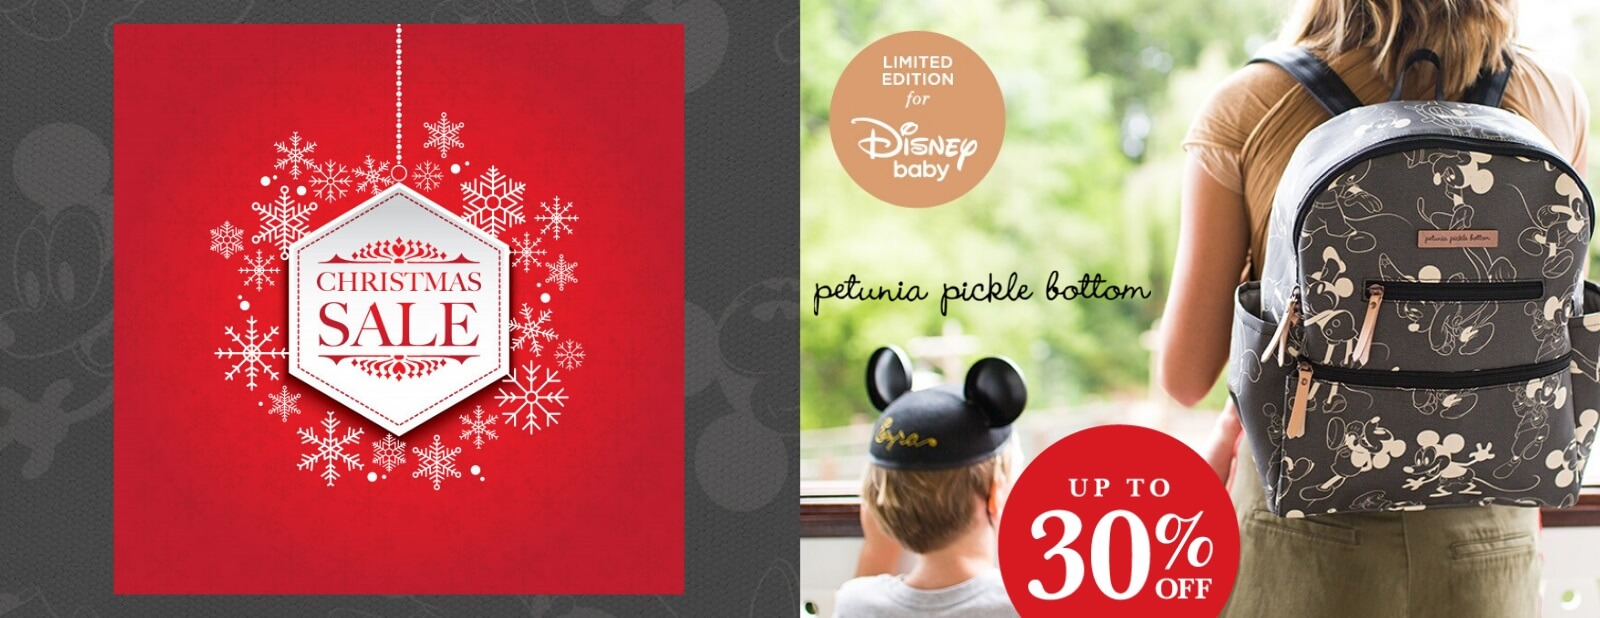 petunia pickle bottom mickey and minnie designer diaper bag christmas boxing week sale